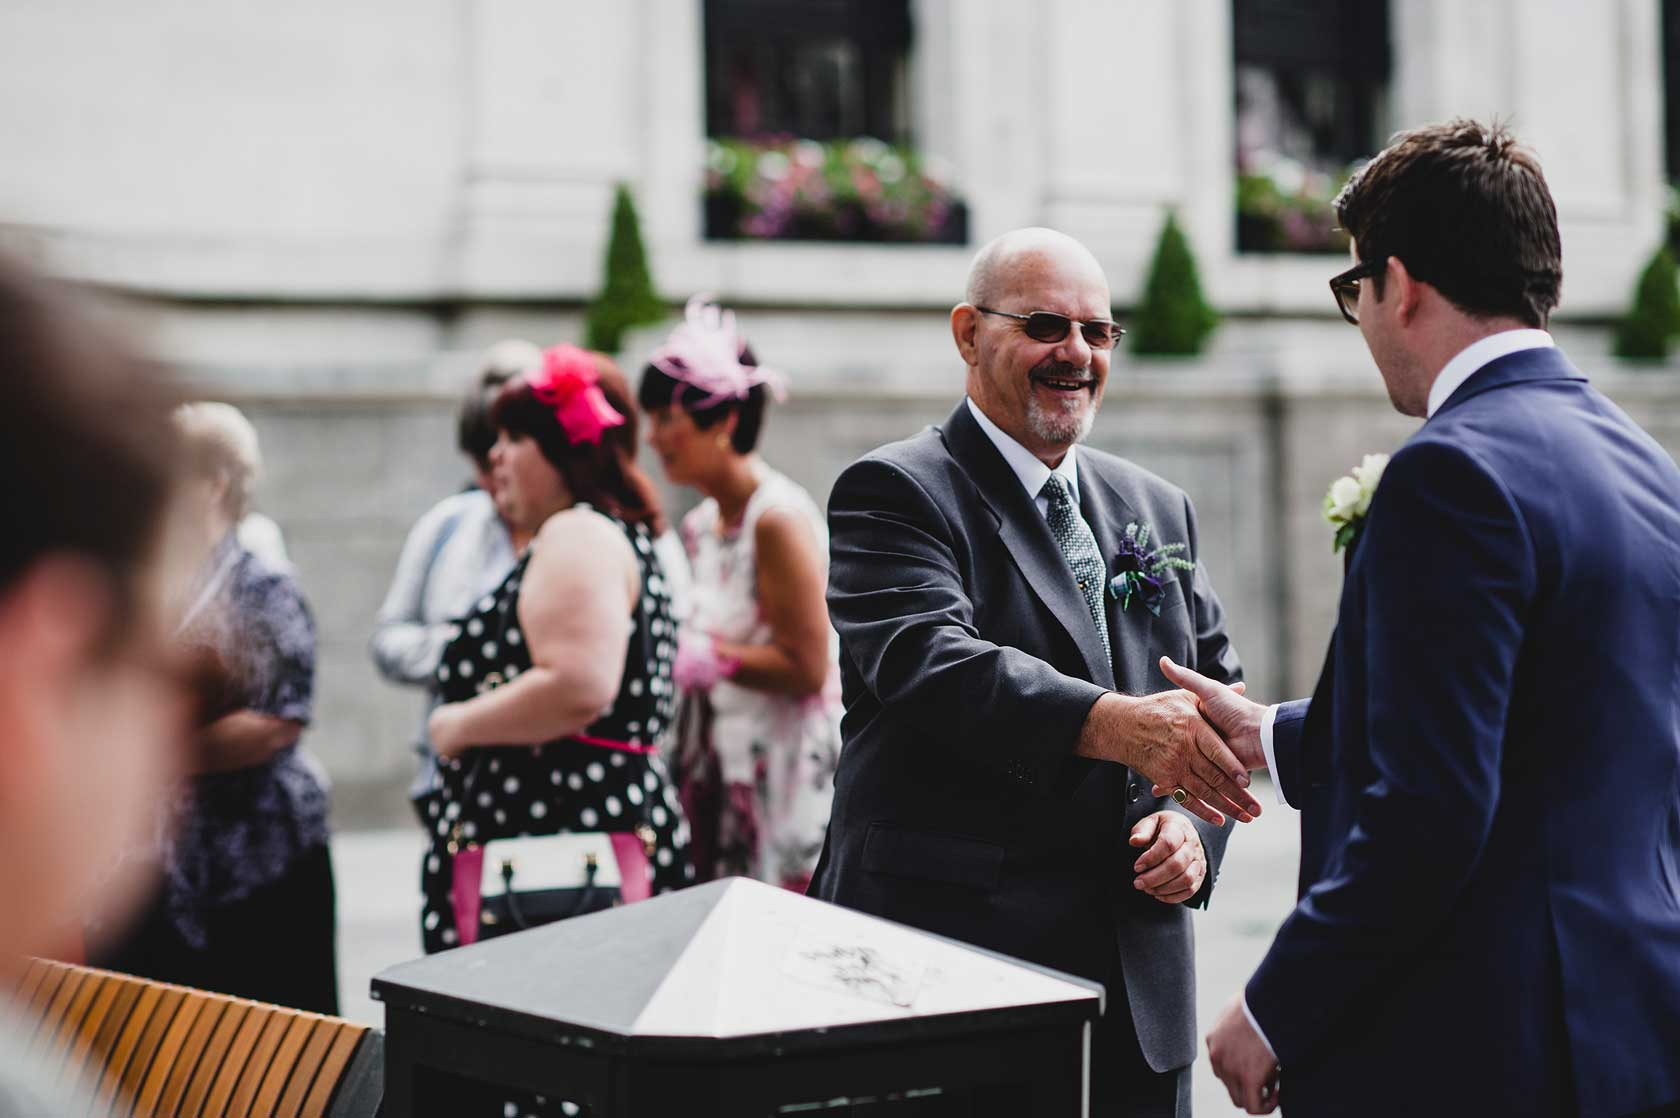 Reportage Wedding Photography at One Lombard Street